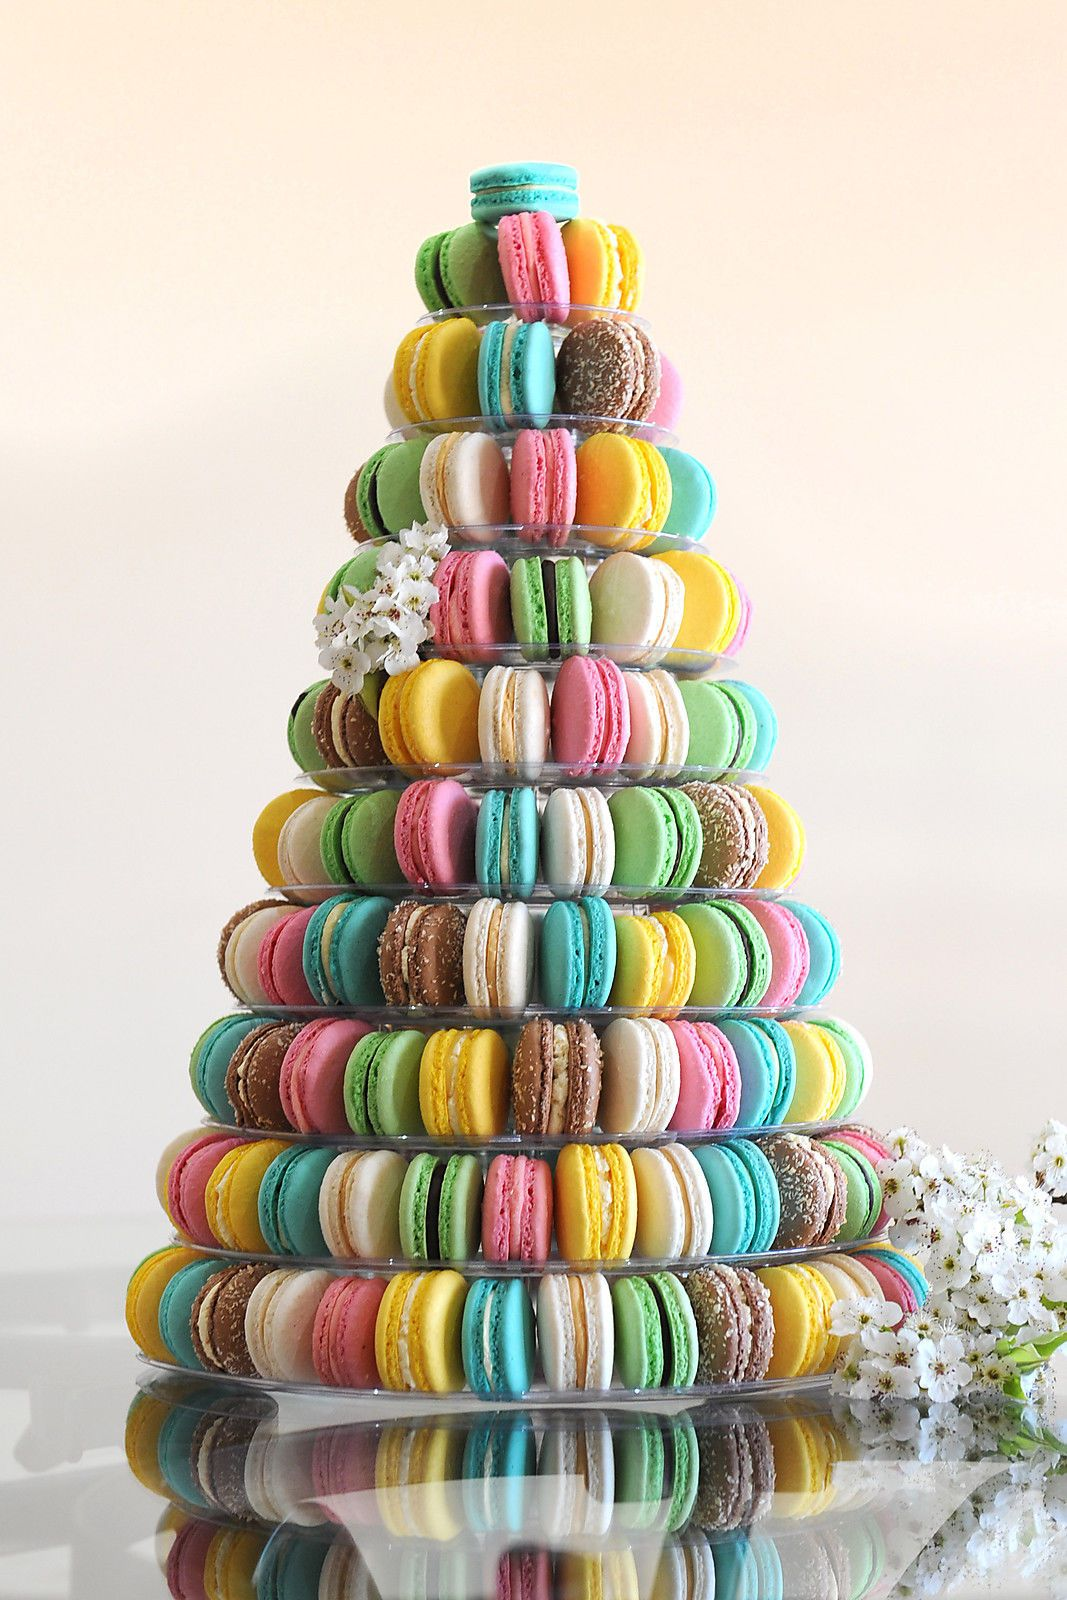 10 Tier Acrylic Round Macaron Tower Macaron Stand Birthday Party Anniversary Wedding Cake Alternatives Macaroon Tower Macaron Tower